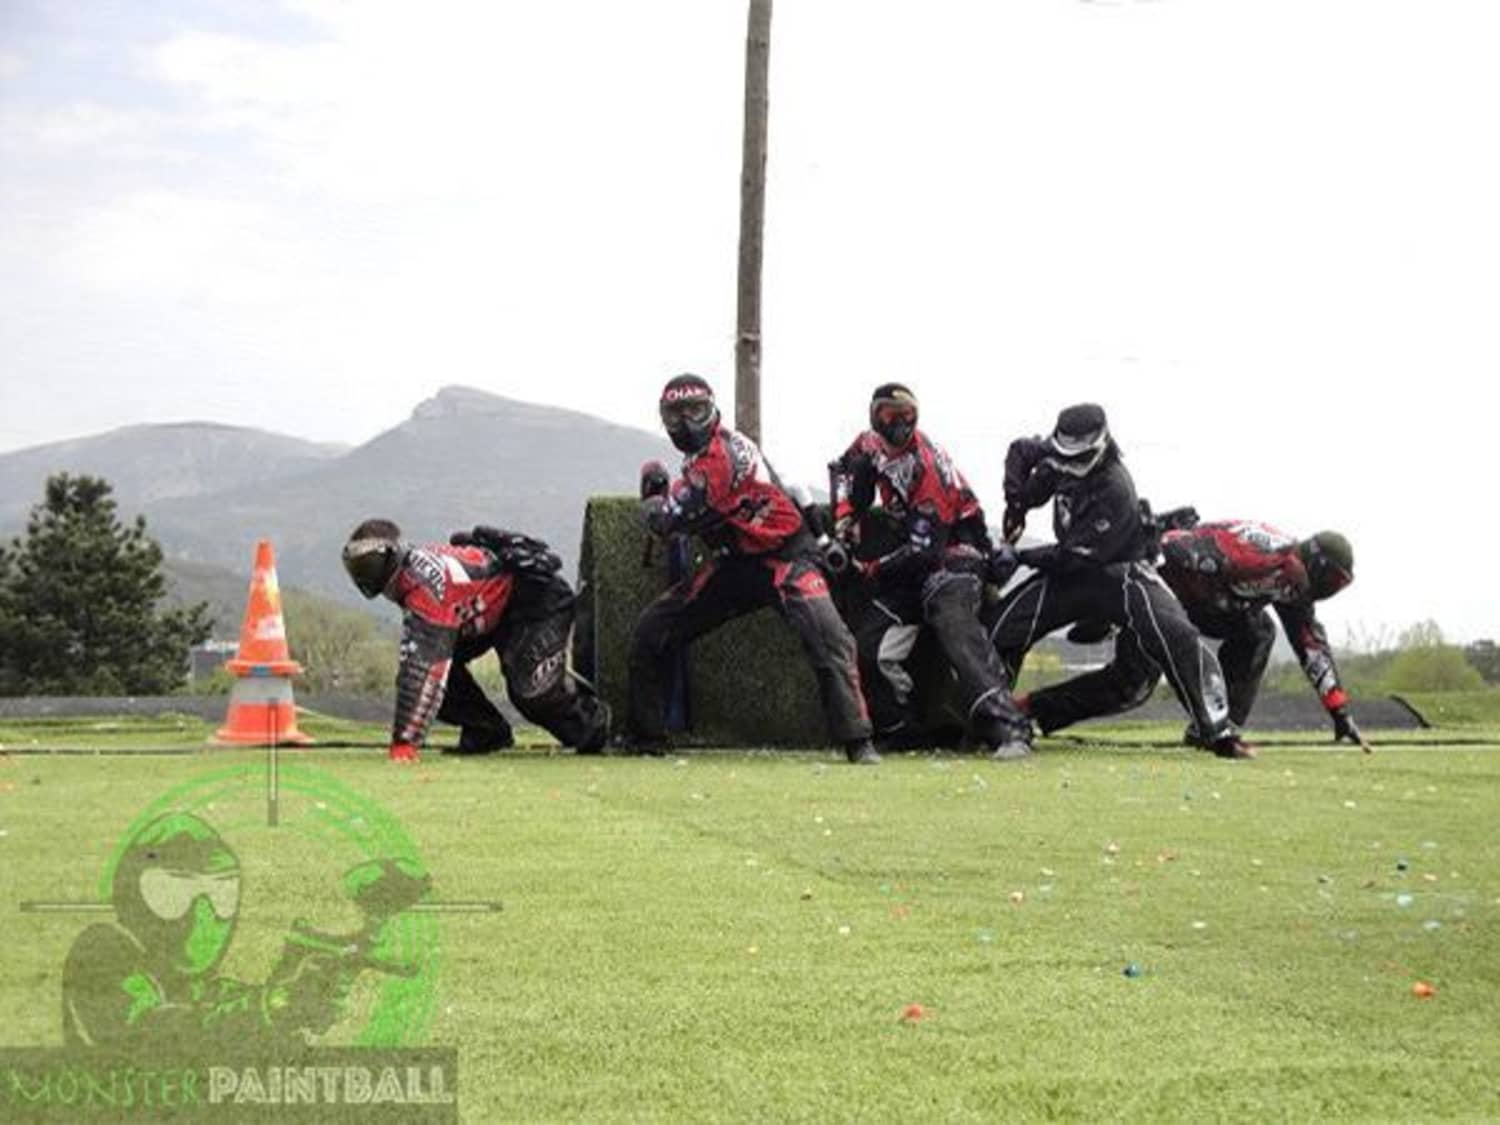 Monster Paintball Le Bar-sur-Loup - Le Bar-sur-Loup